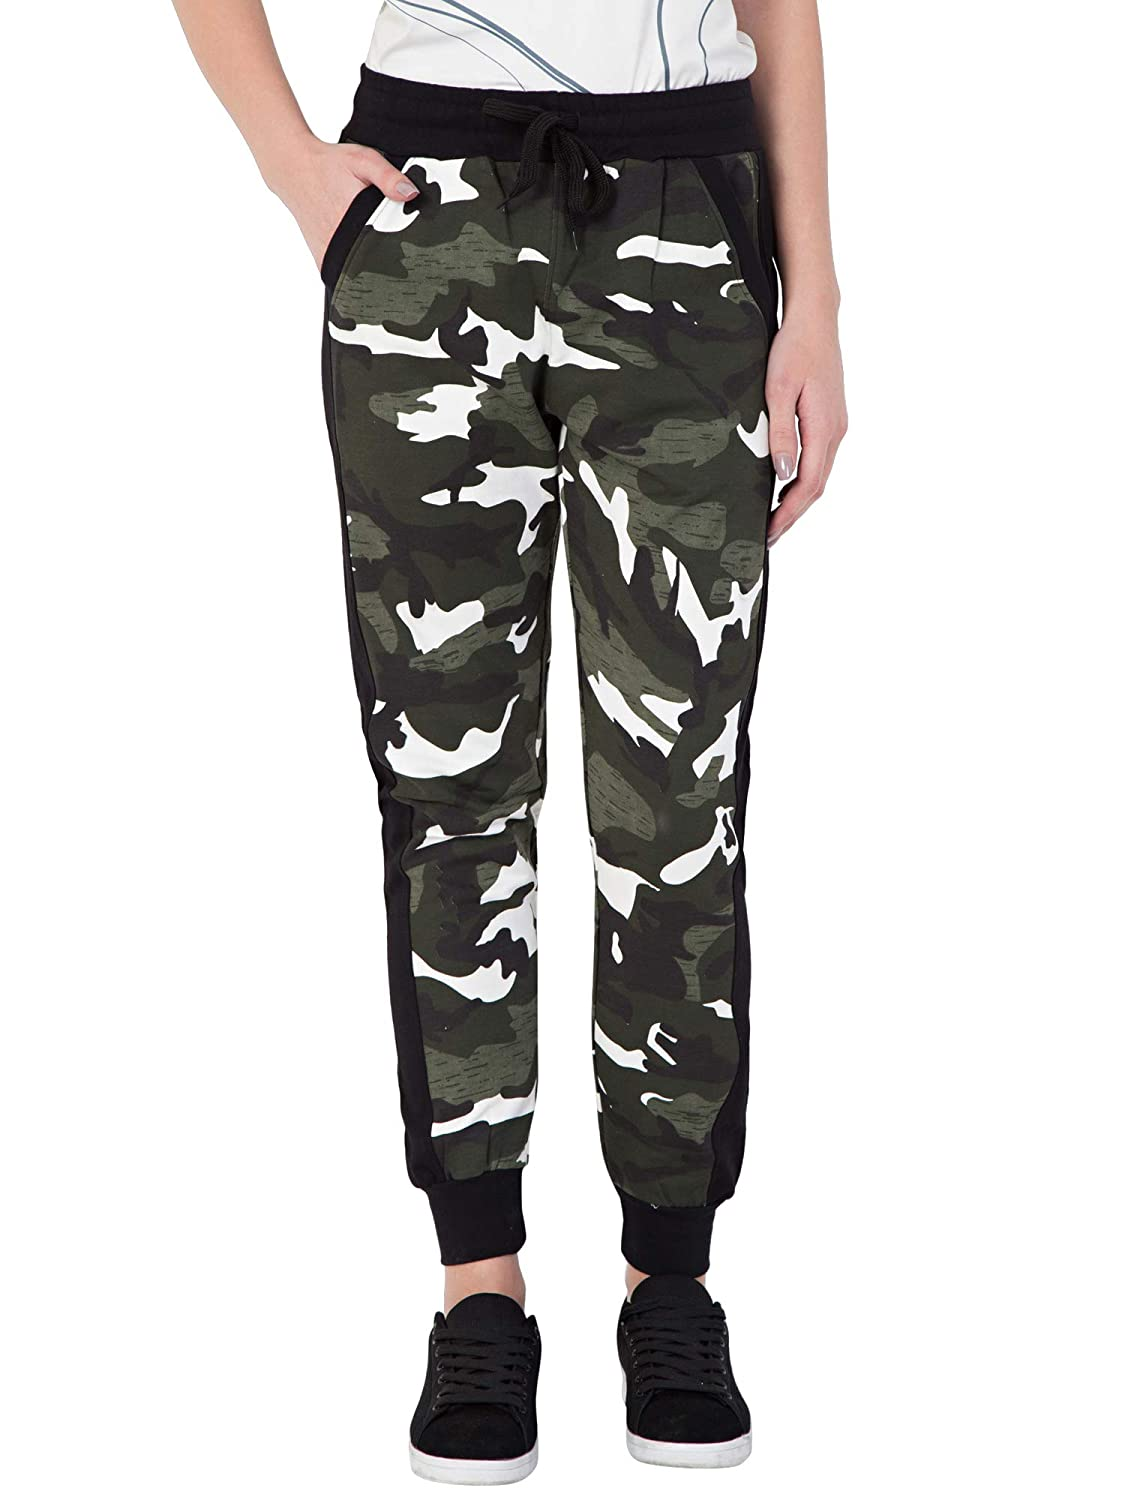 best great prices great fit Fflirtygo Women's Cotton Army Track Pants, Army Joggers for Women, Women's  Leisure Wear, Military Track Lower for Sports Gym Athletic Training Workout  ...